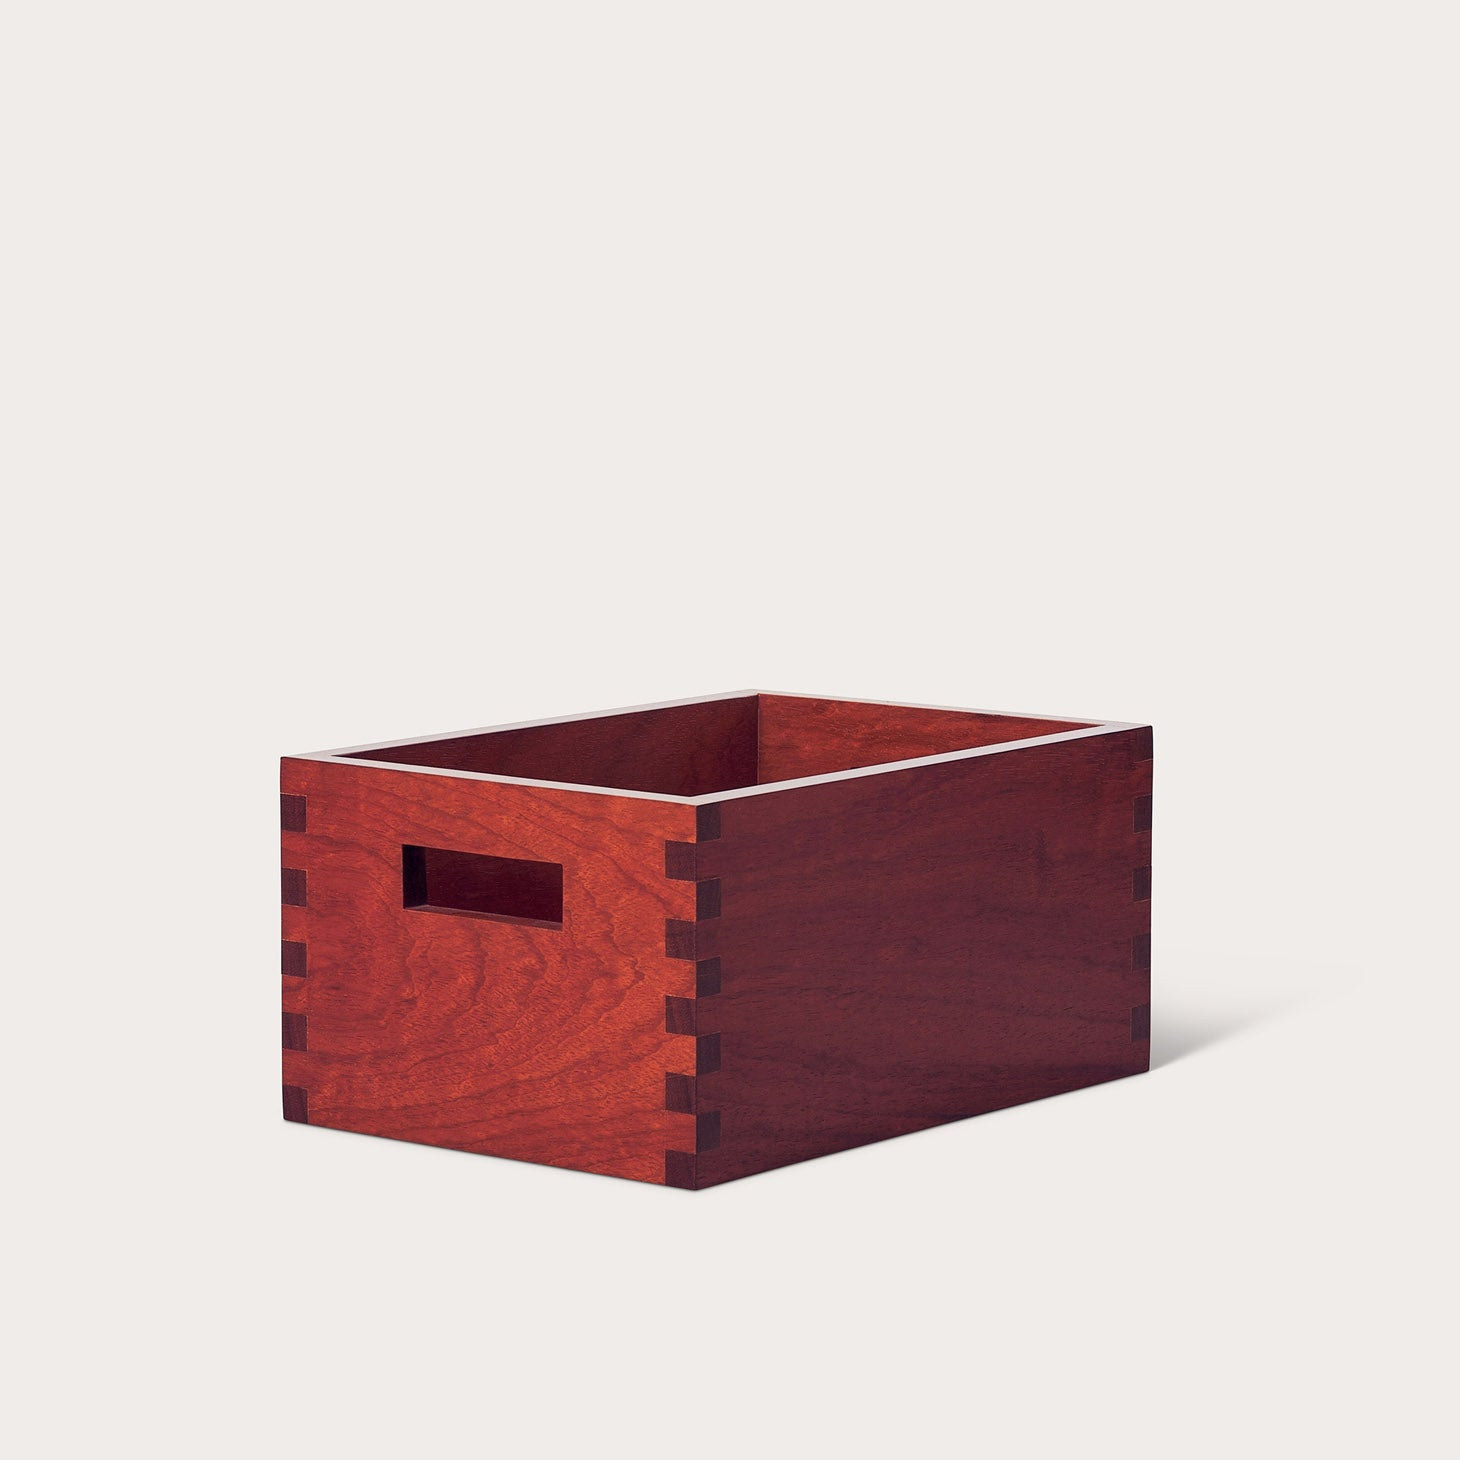 Bienal Box Accessories Etel Carmona Designer Furniture Sku: 003-100-10071